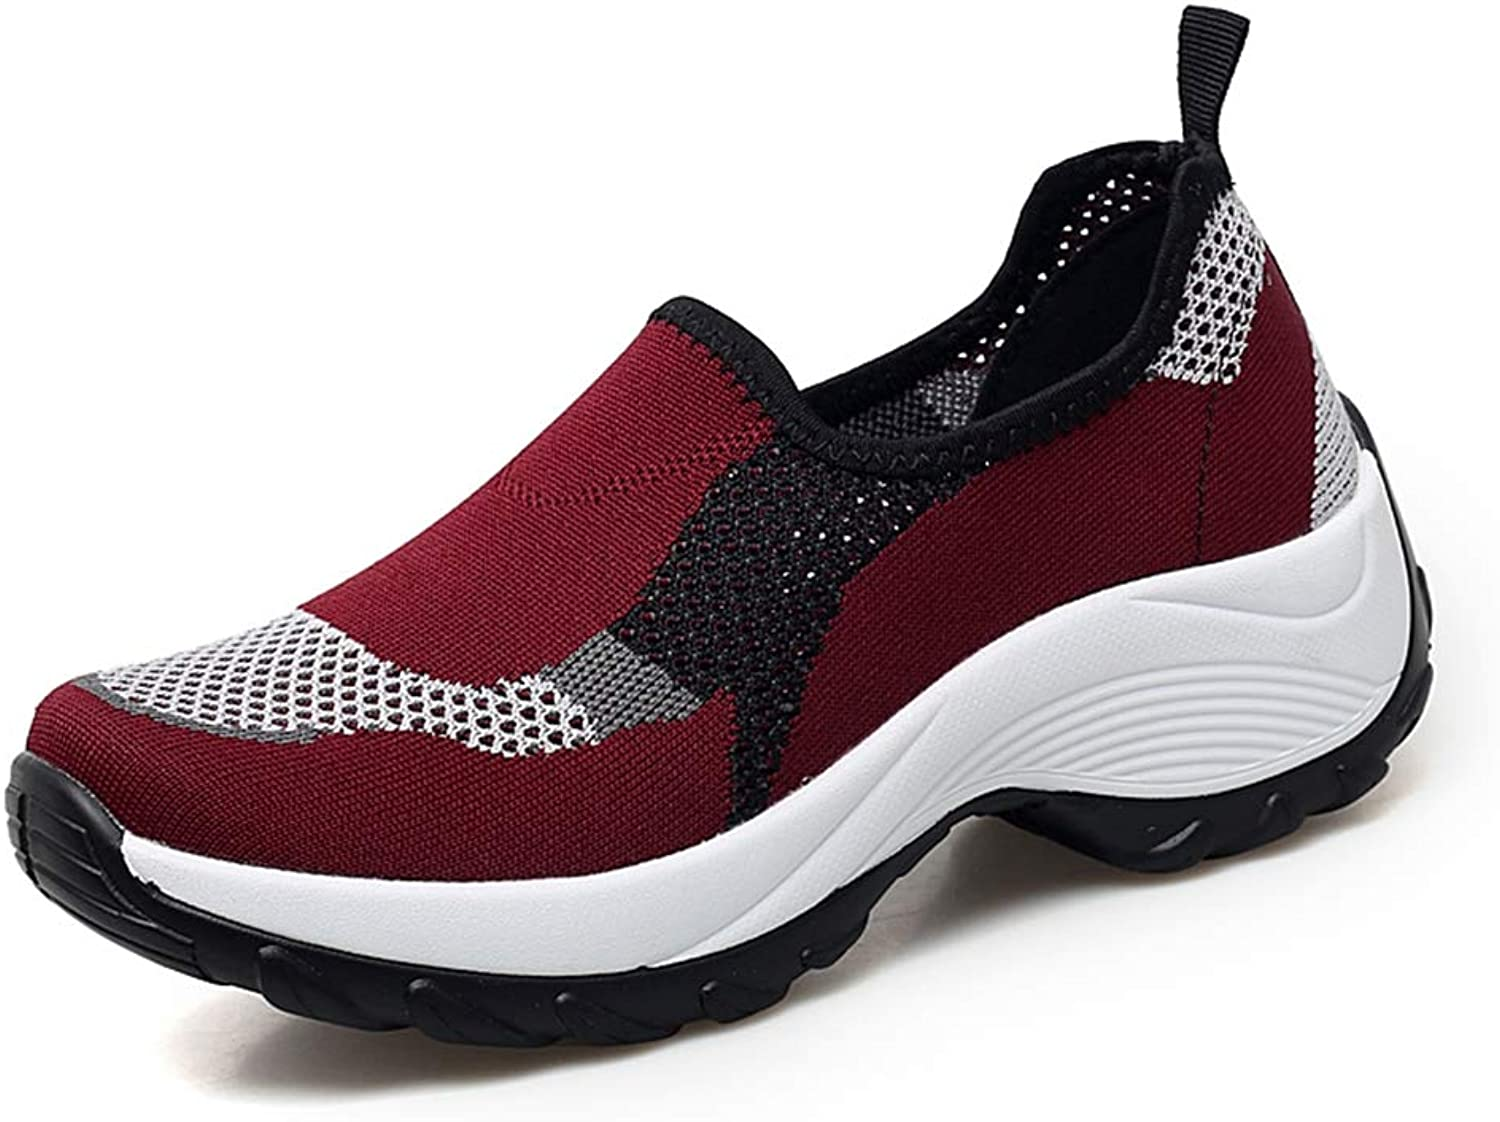 Women Casual Air Mesh Breathable shoes Fashion Lace-up Wedges Sneakers Hollow Out Female shoes